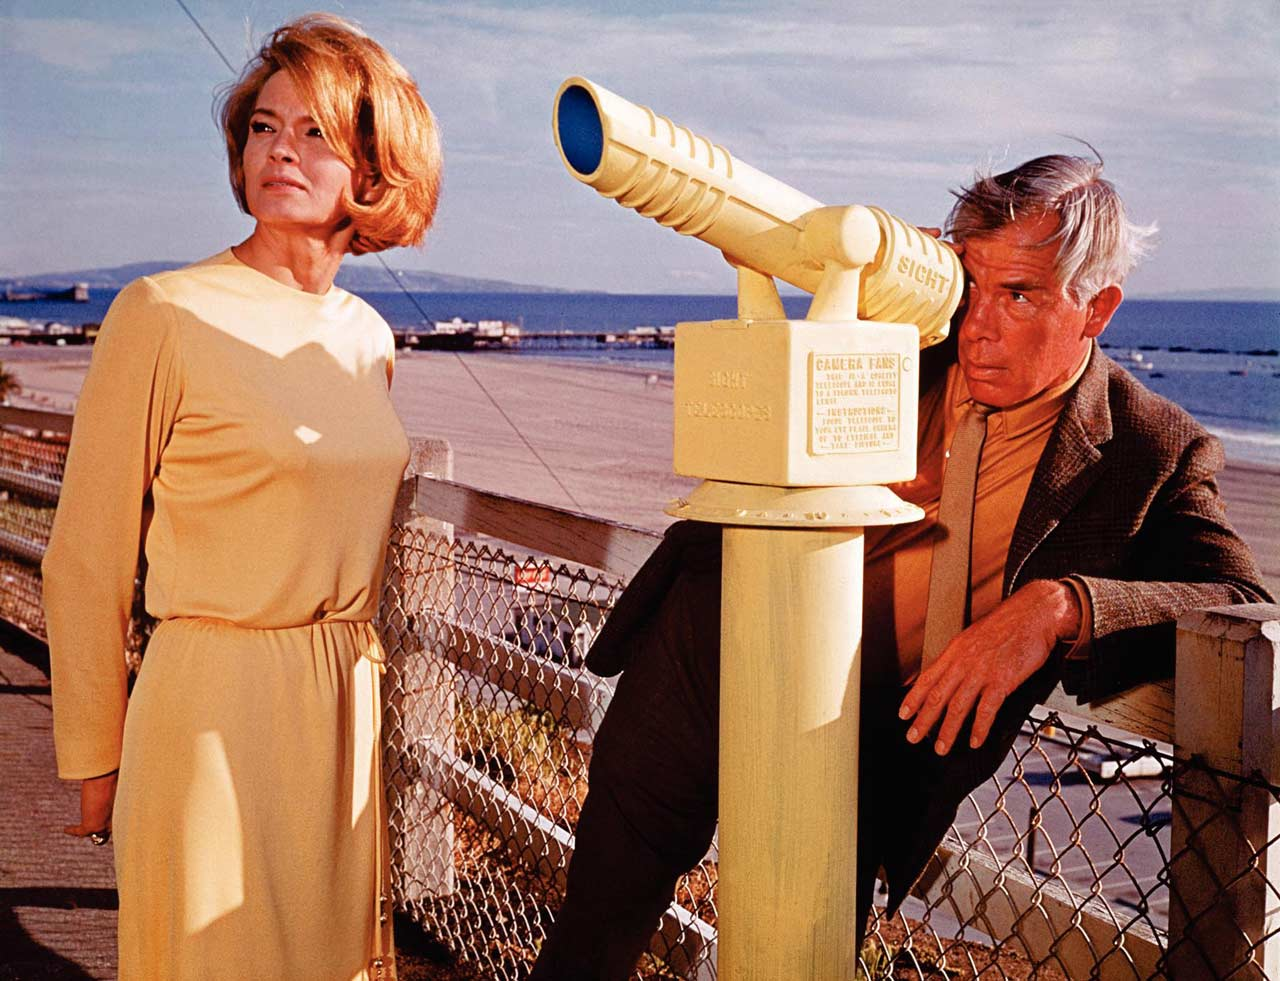 Angie Dickinson et Lee Marvin dans Le Point de non retour (1967)